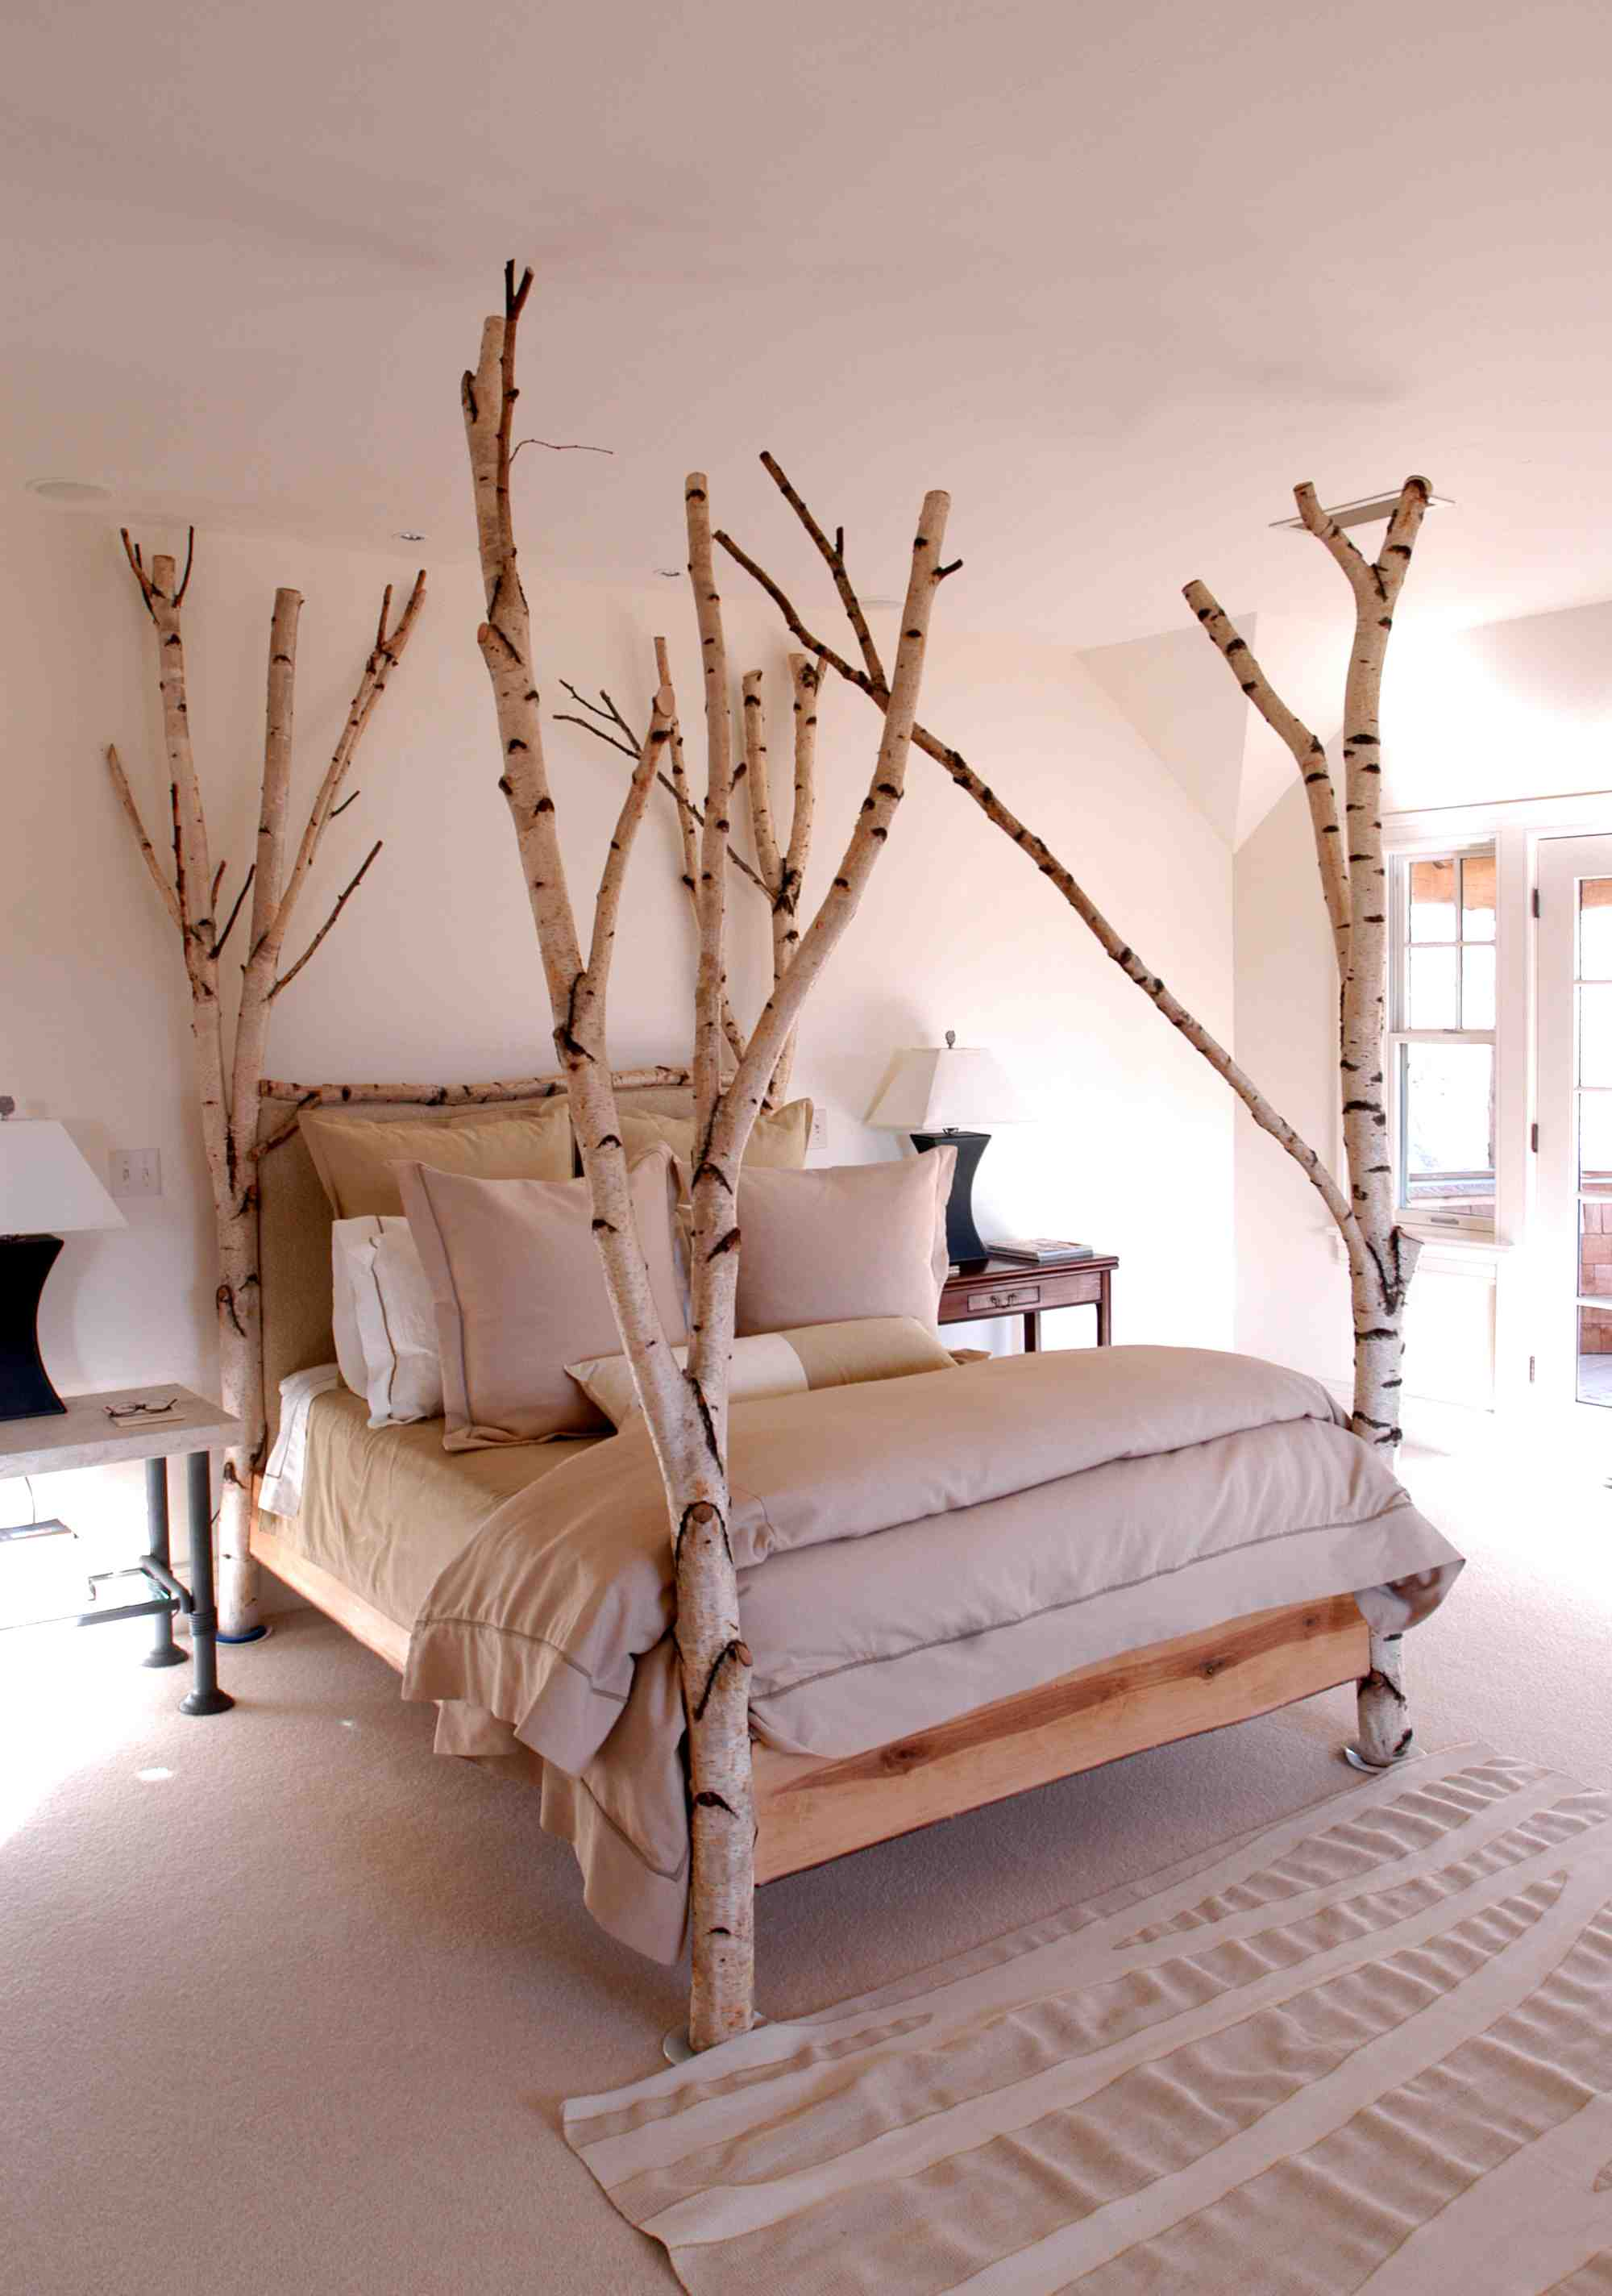 Magnificent White Bark Tree Bed   Do It Yourself Fun Ideas source  womenwhodesignthewest wordpress com